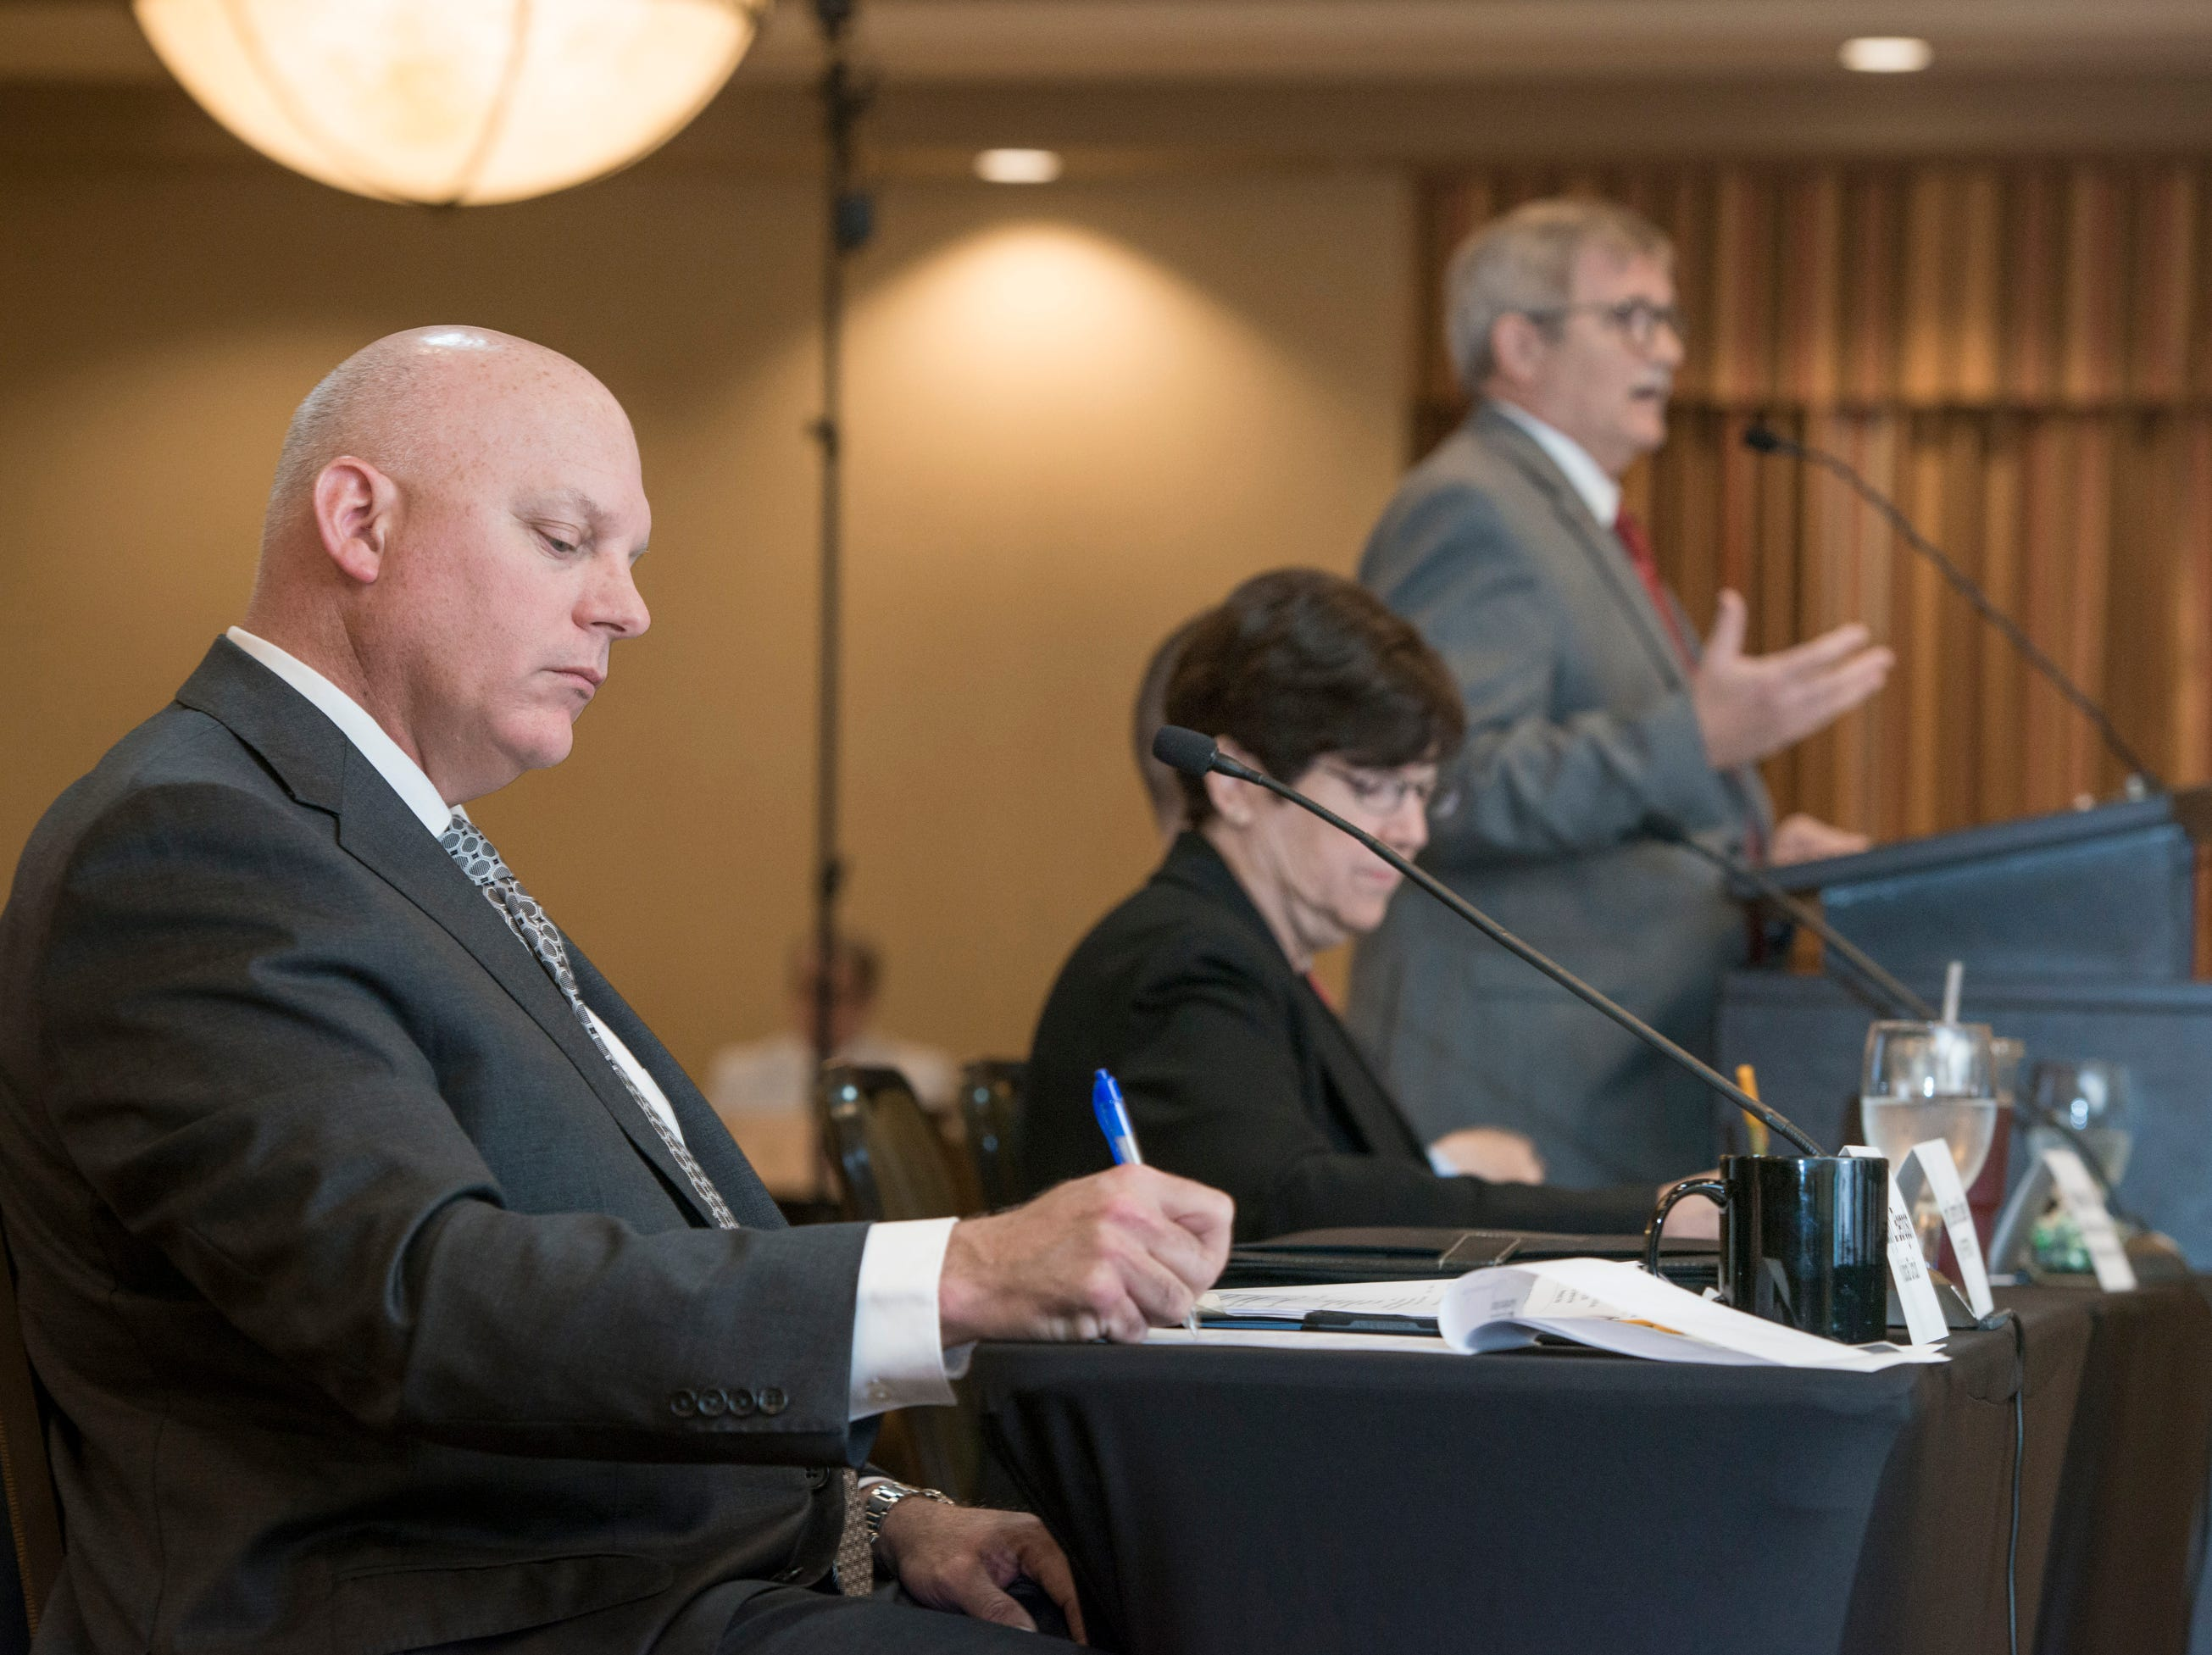 First Judicial Circuit judge Gary Bergosh, left, takes notes as Florida Veterans Foundation president Dennis Baker speaks during the Florida Commission on Access to Civil Justice discussion of veterans issues at the Hilton Garden Inn in Pensacola on Friday, August 10, 2018.